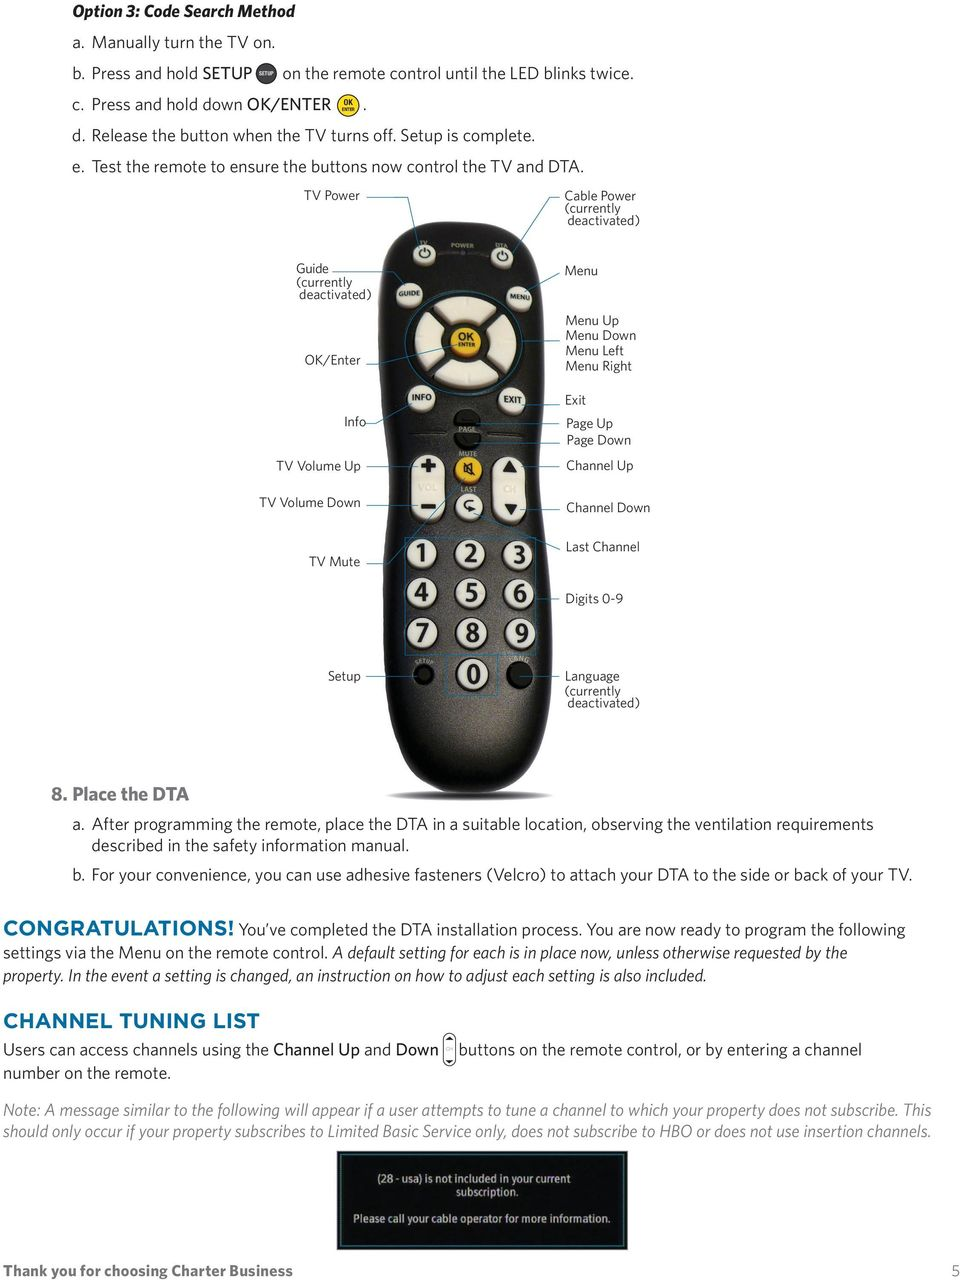 DTA INSTALLATION PROCESS & USER GUIDE FOR CHARTER BUSINESS